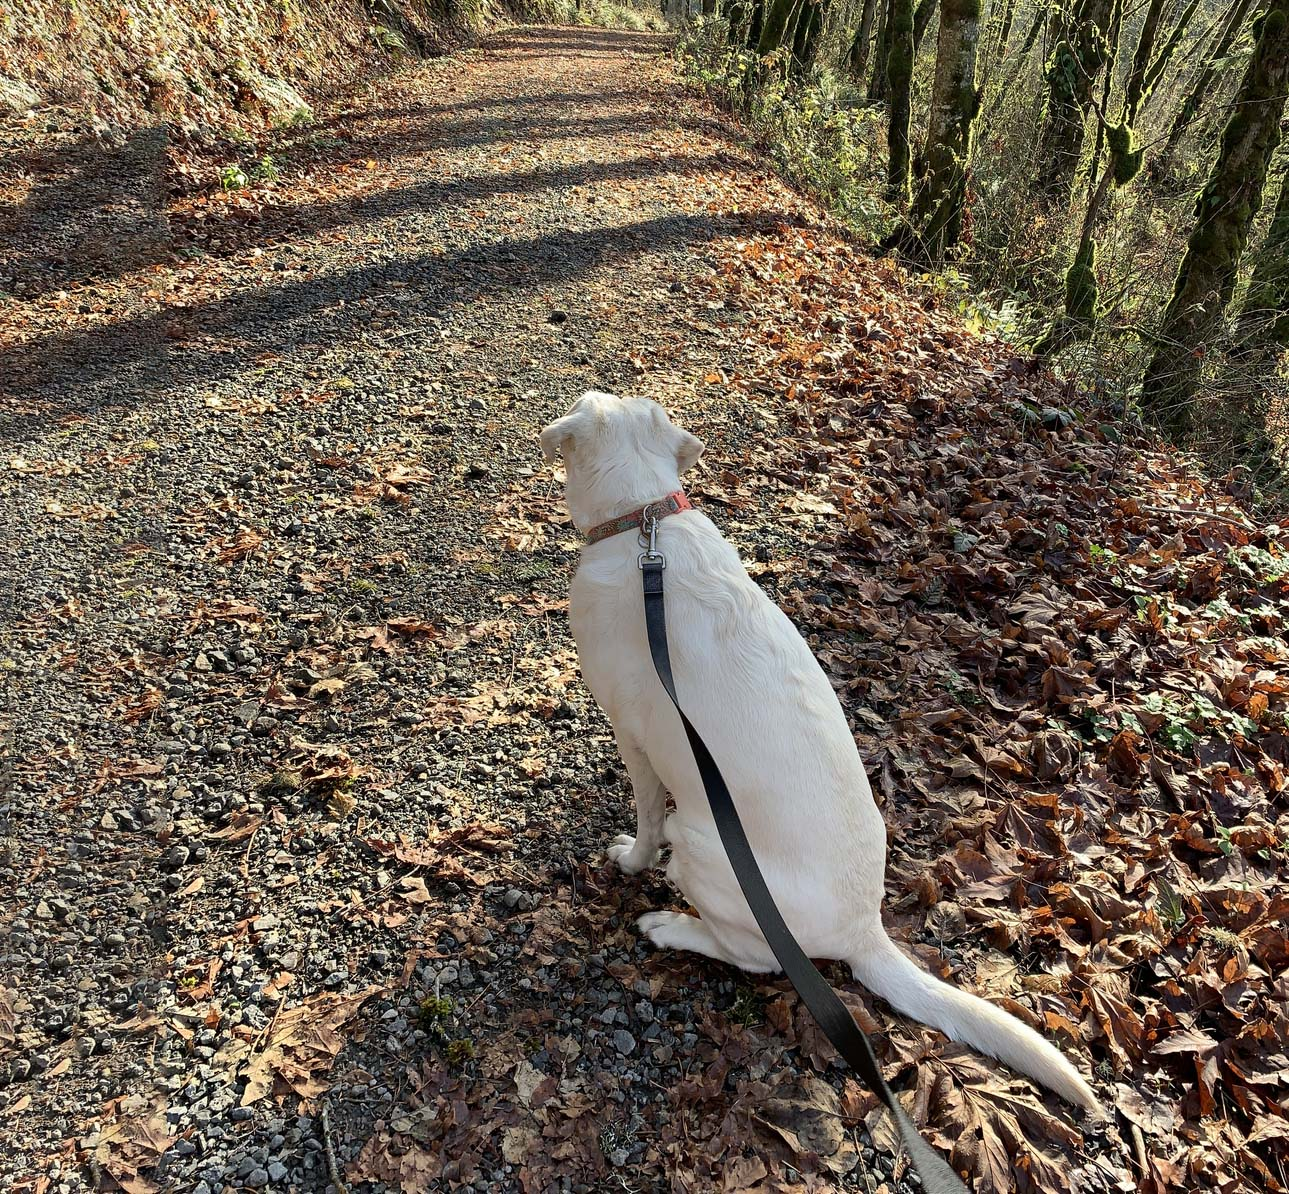 A dog looks down a forested trail.